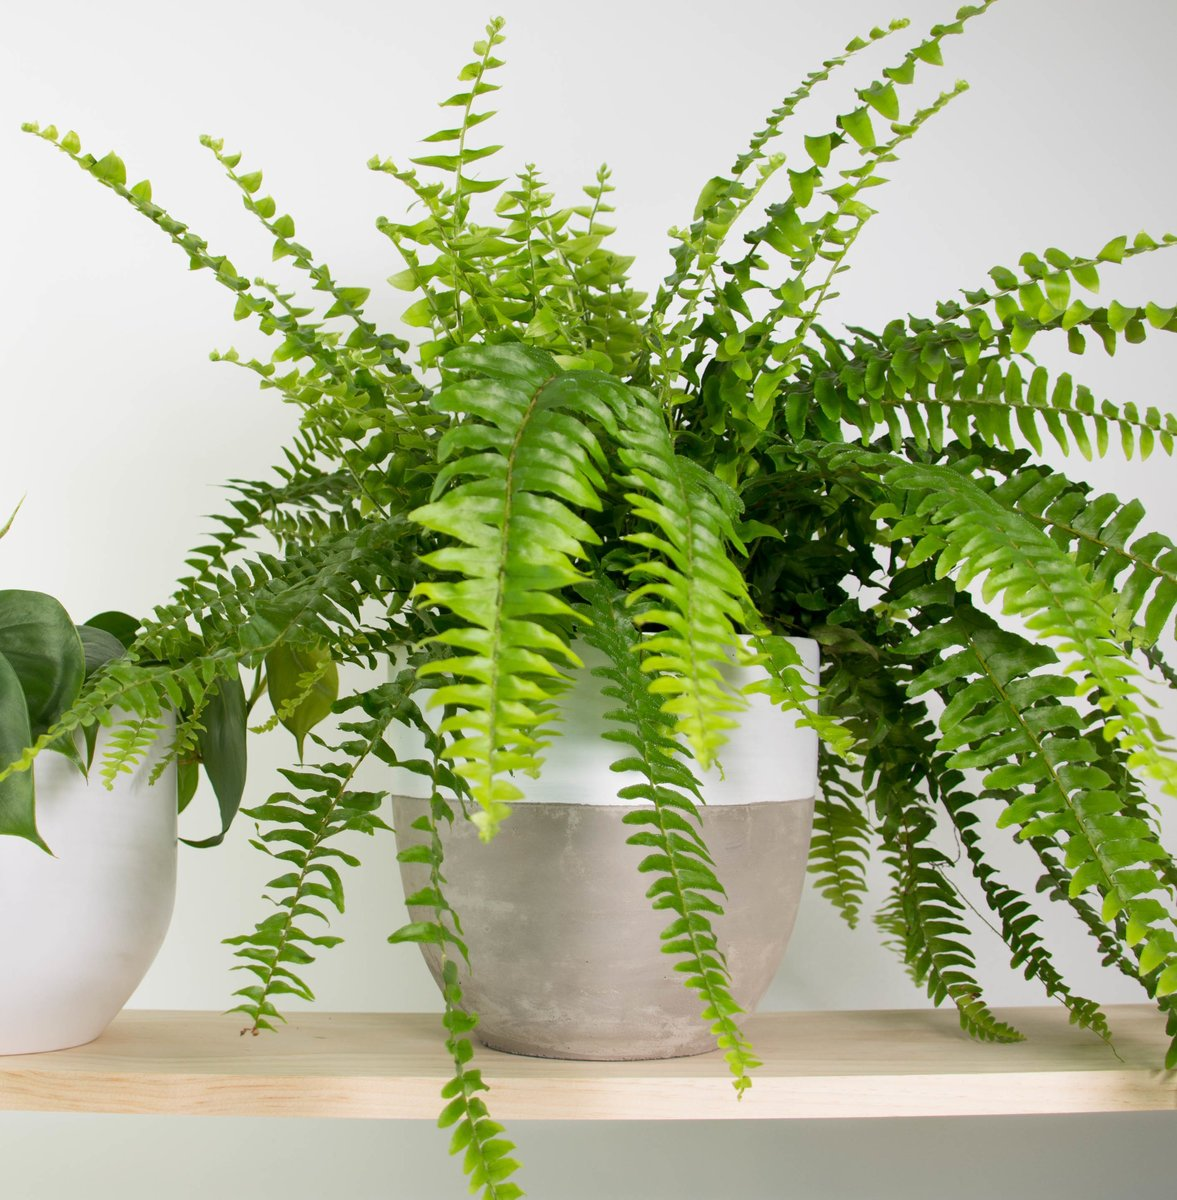 5 Indoor Plants for Low Light - On the Danforth